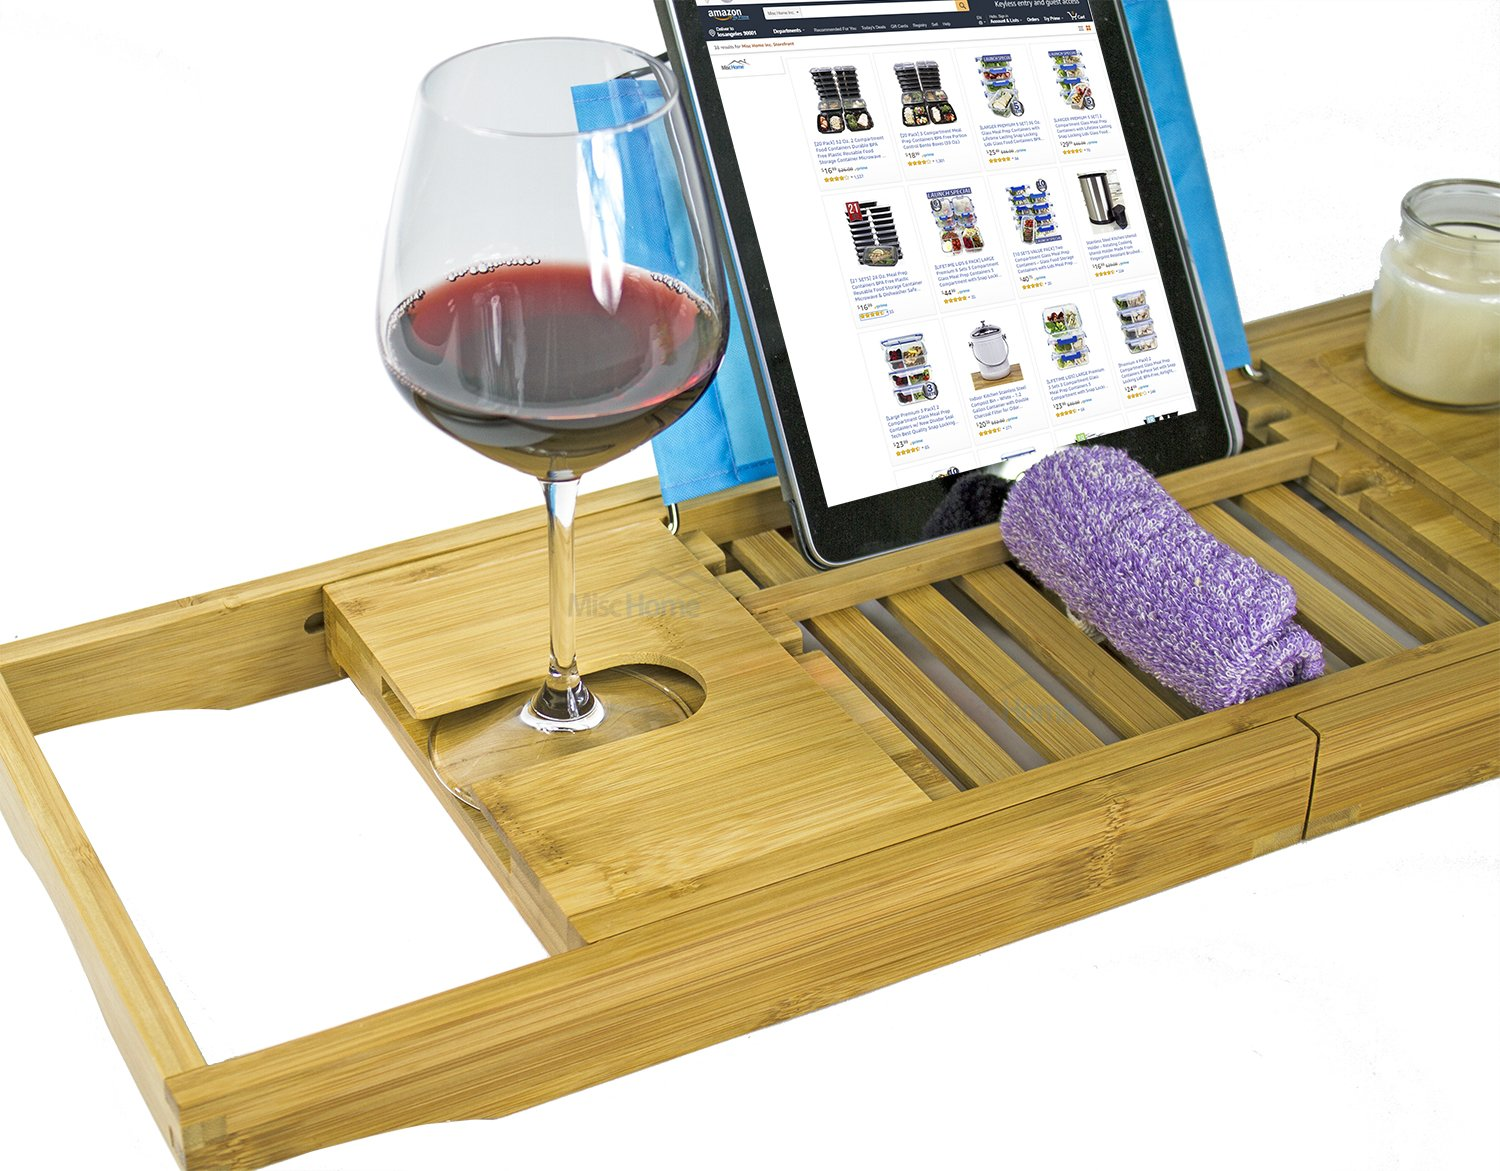 [Luxury] Bamboo Bathtub Caddy Tray with Expanding Sides, Premium Bath Tray, Tablet Holder, Wine Glass Holder, Eco Friendly Spay Tray for Bathtub Tray with Wine Holder for Bathtub by Misc Home (Image #4)